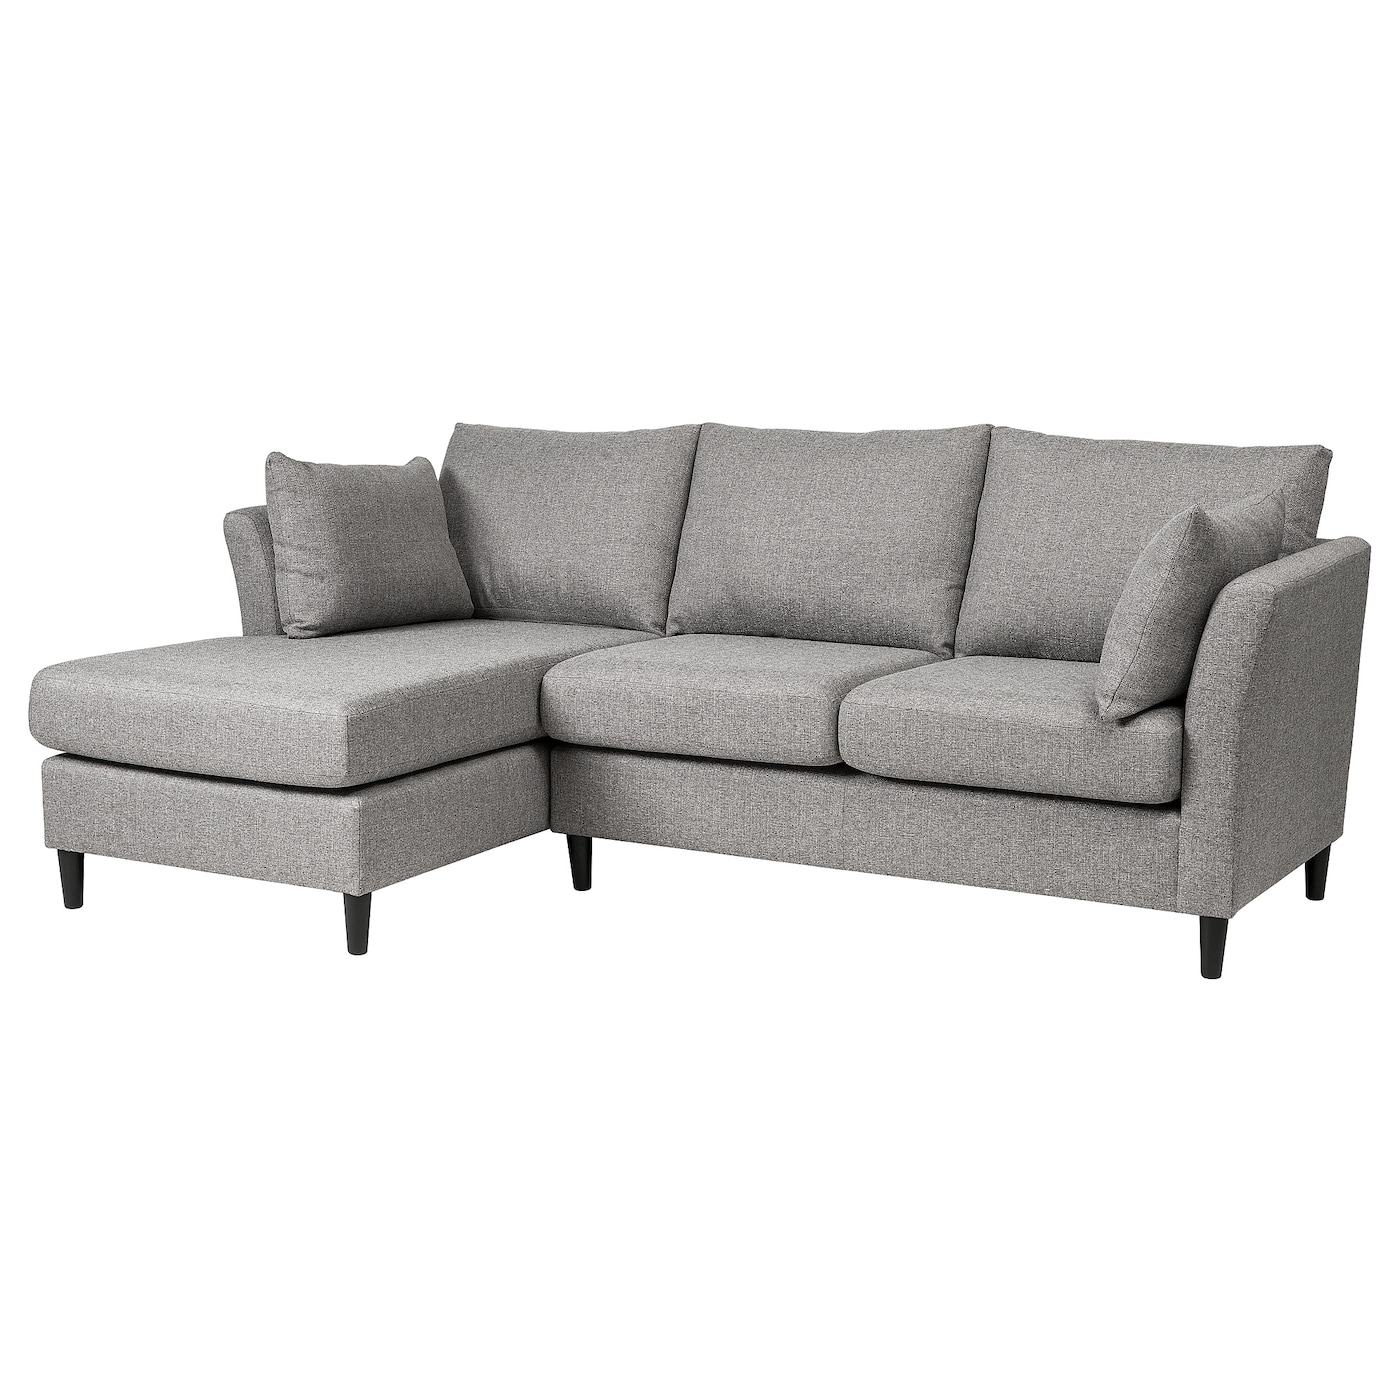 Bankeryd 2 seat sofa w chaise longue left grey ikea for Chaise longue sofa